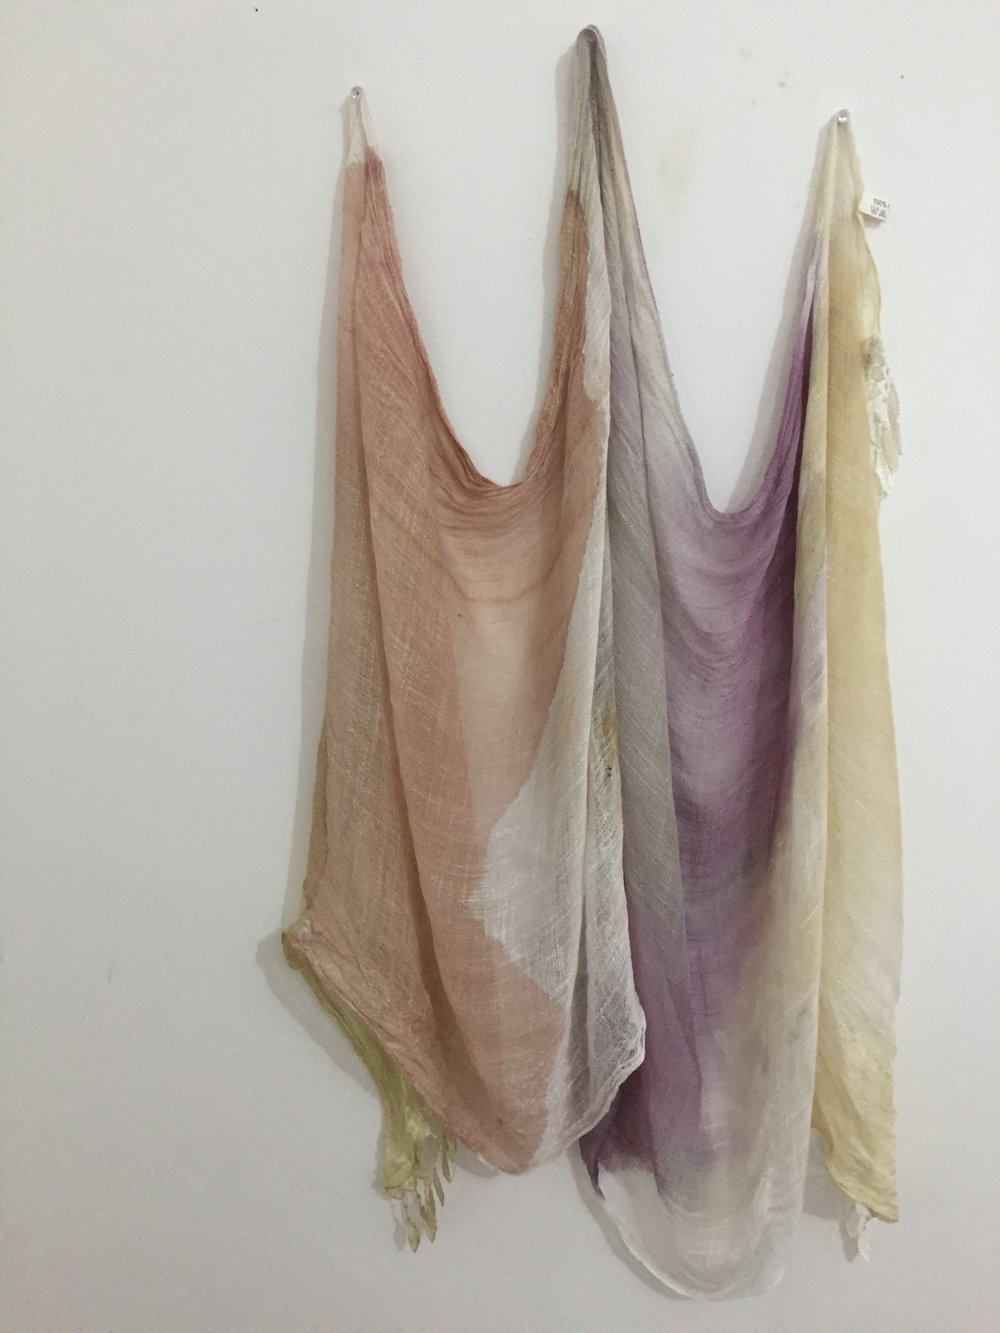 Natural Dye on cotton  -